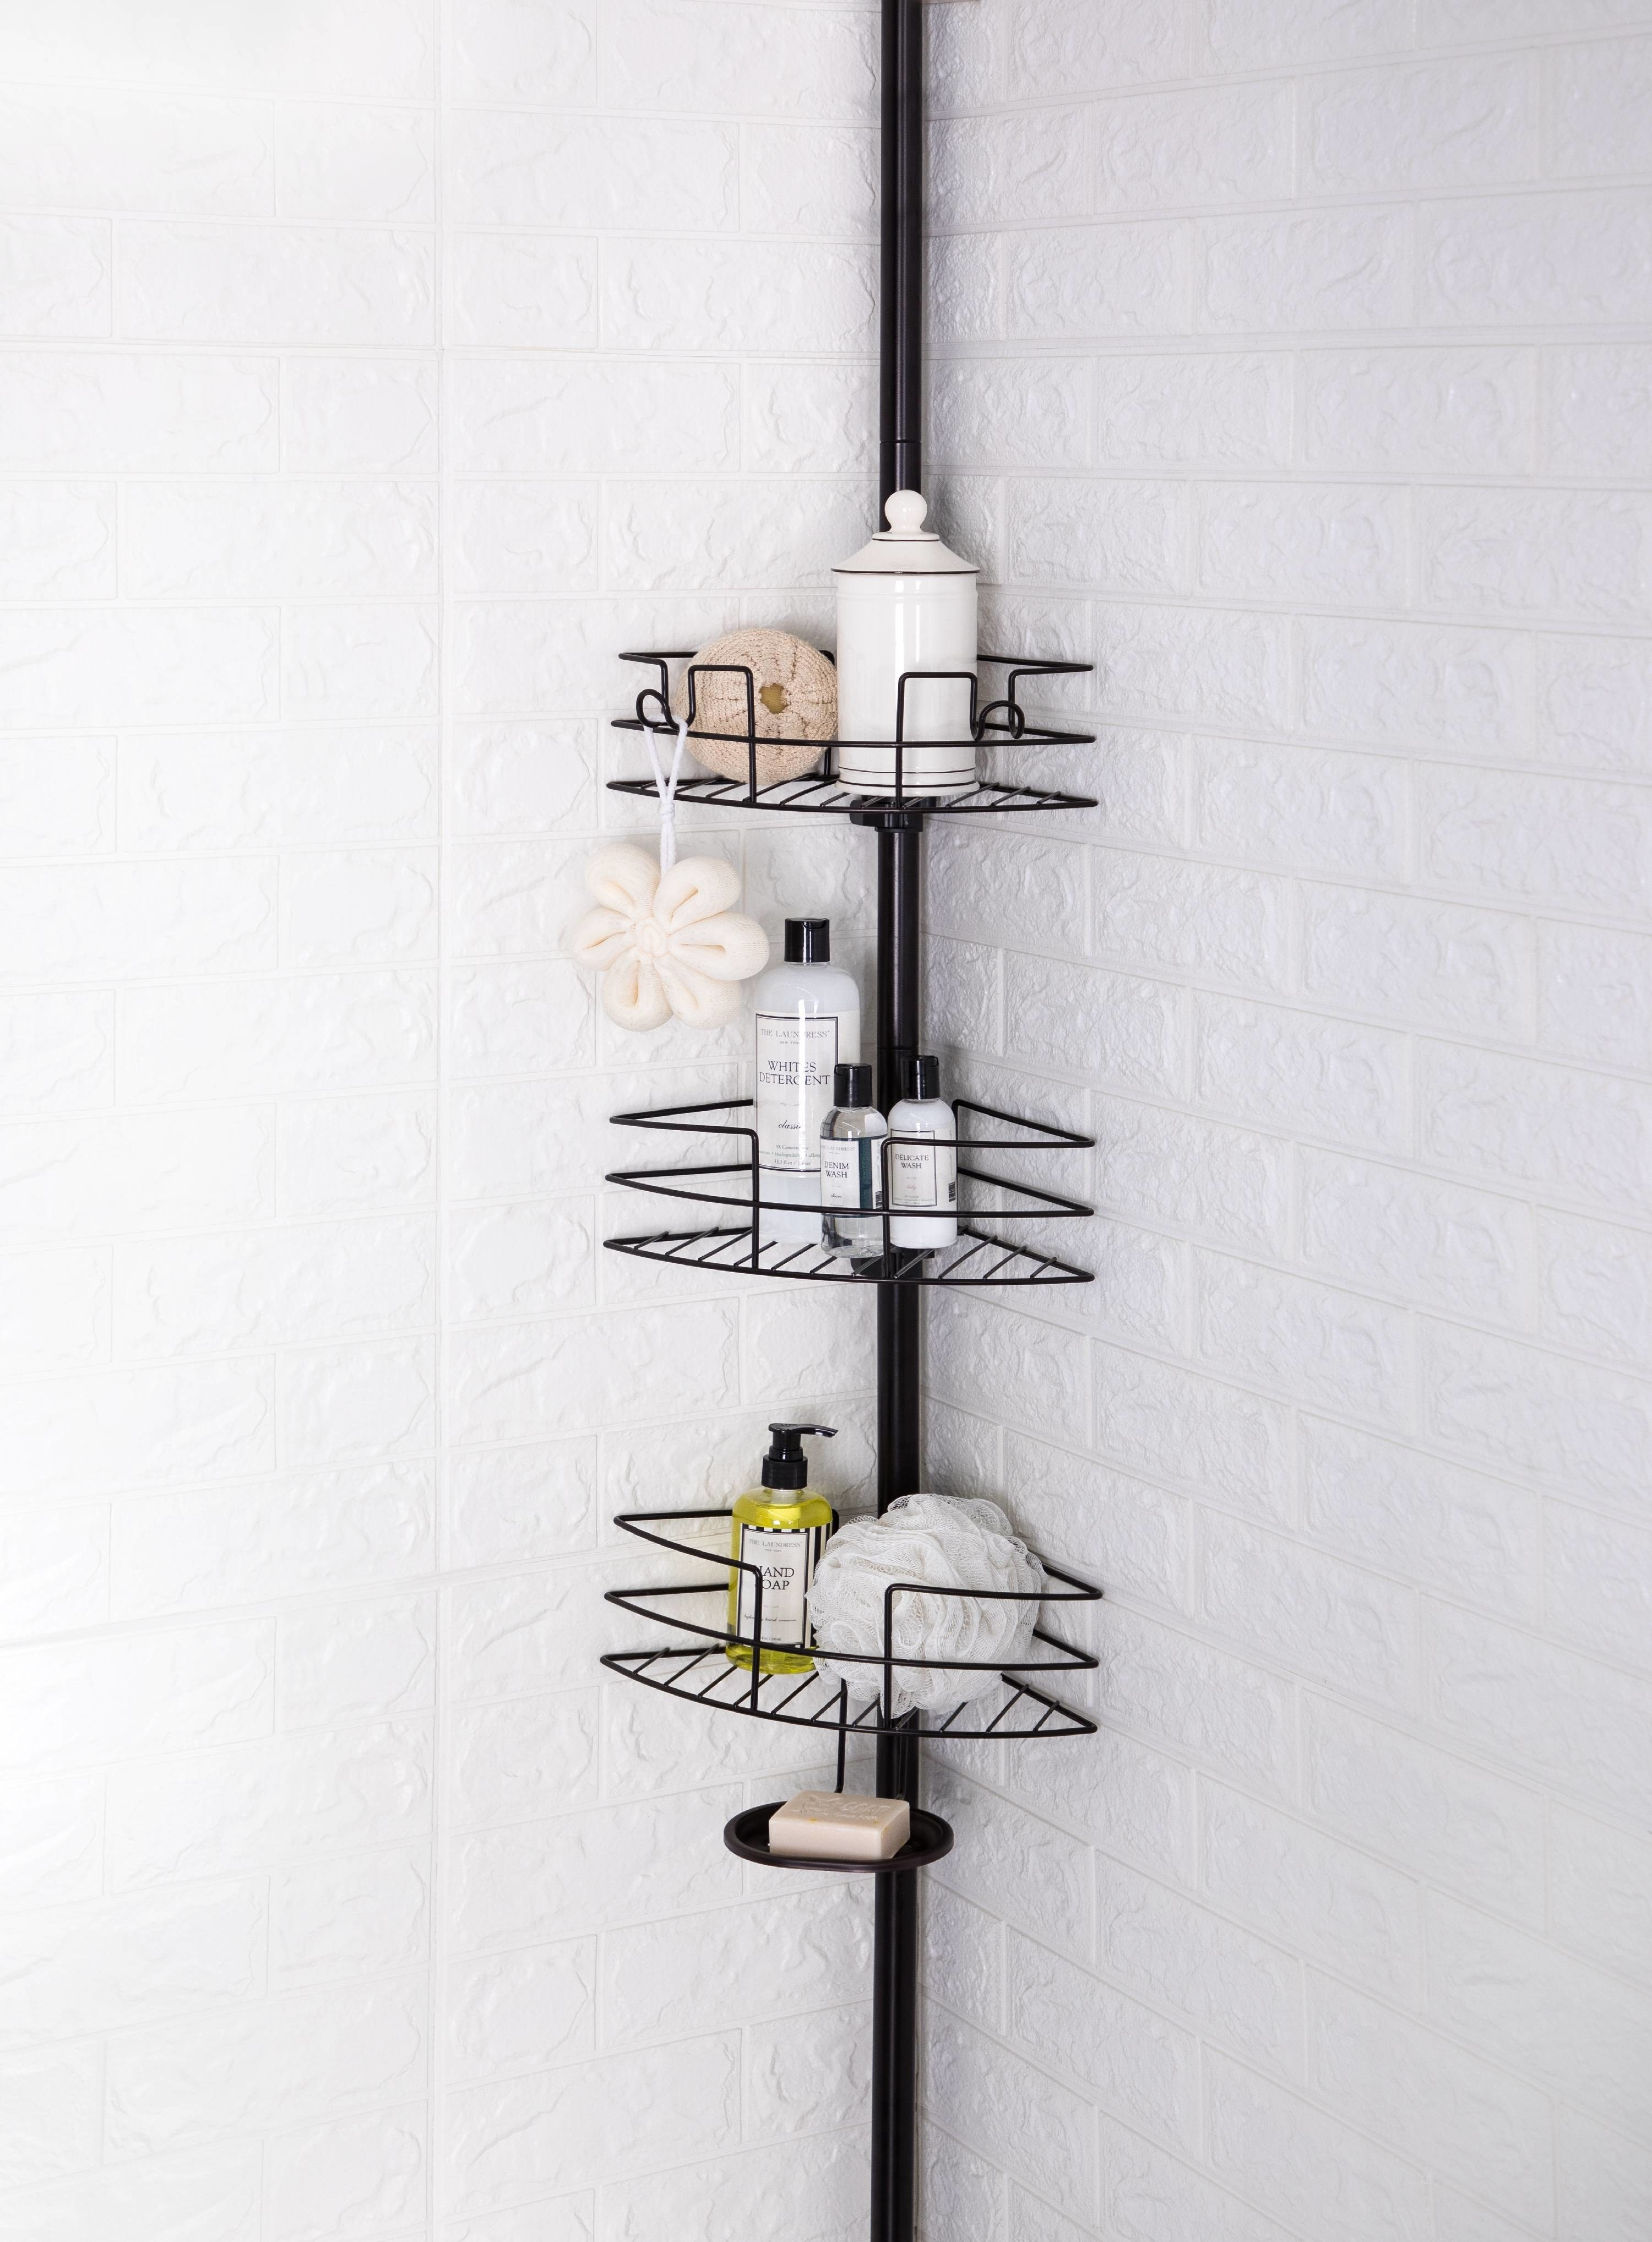 The three-tier shower caddy with an extension pole